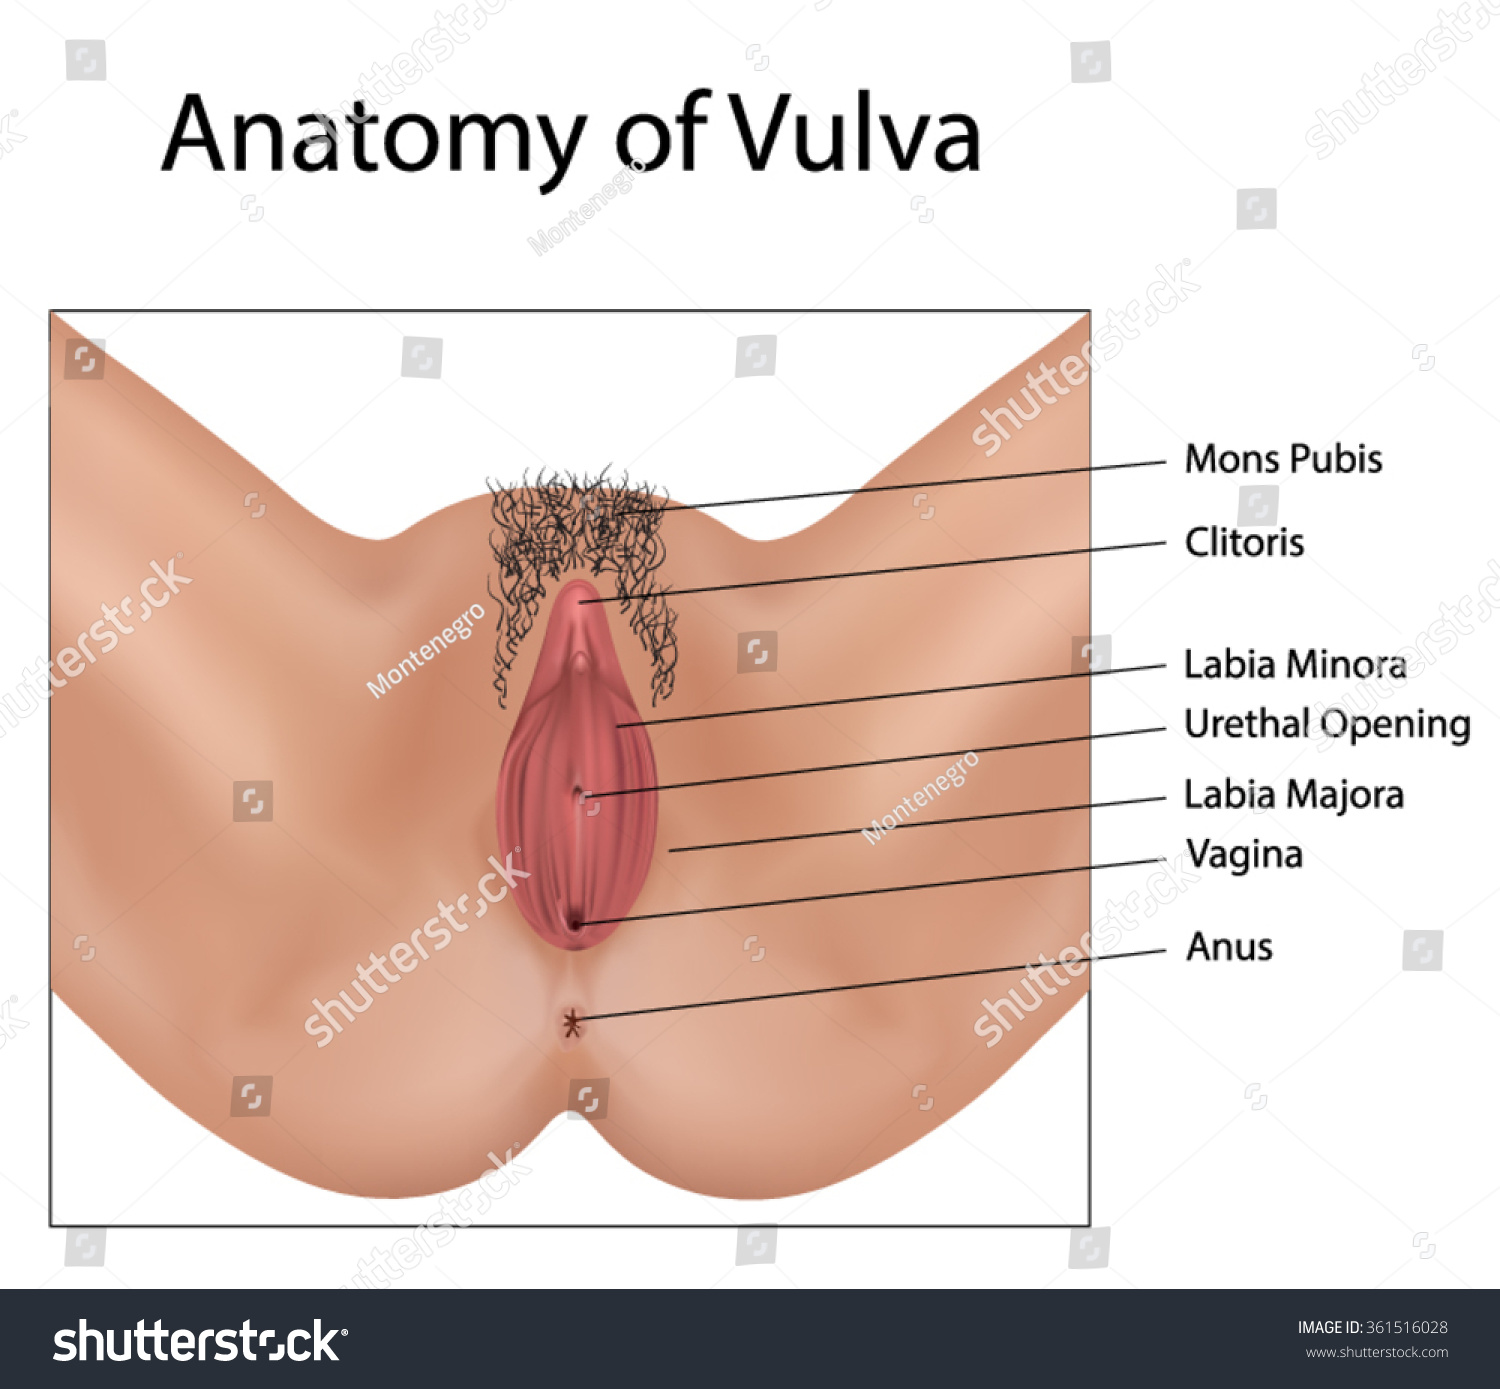 anatomy vulva stock vector 361516028 - shutterstock, Human Body